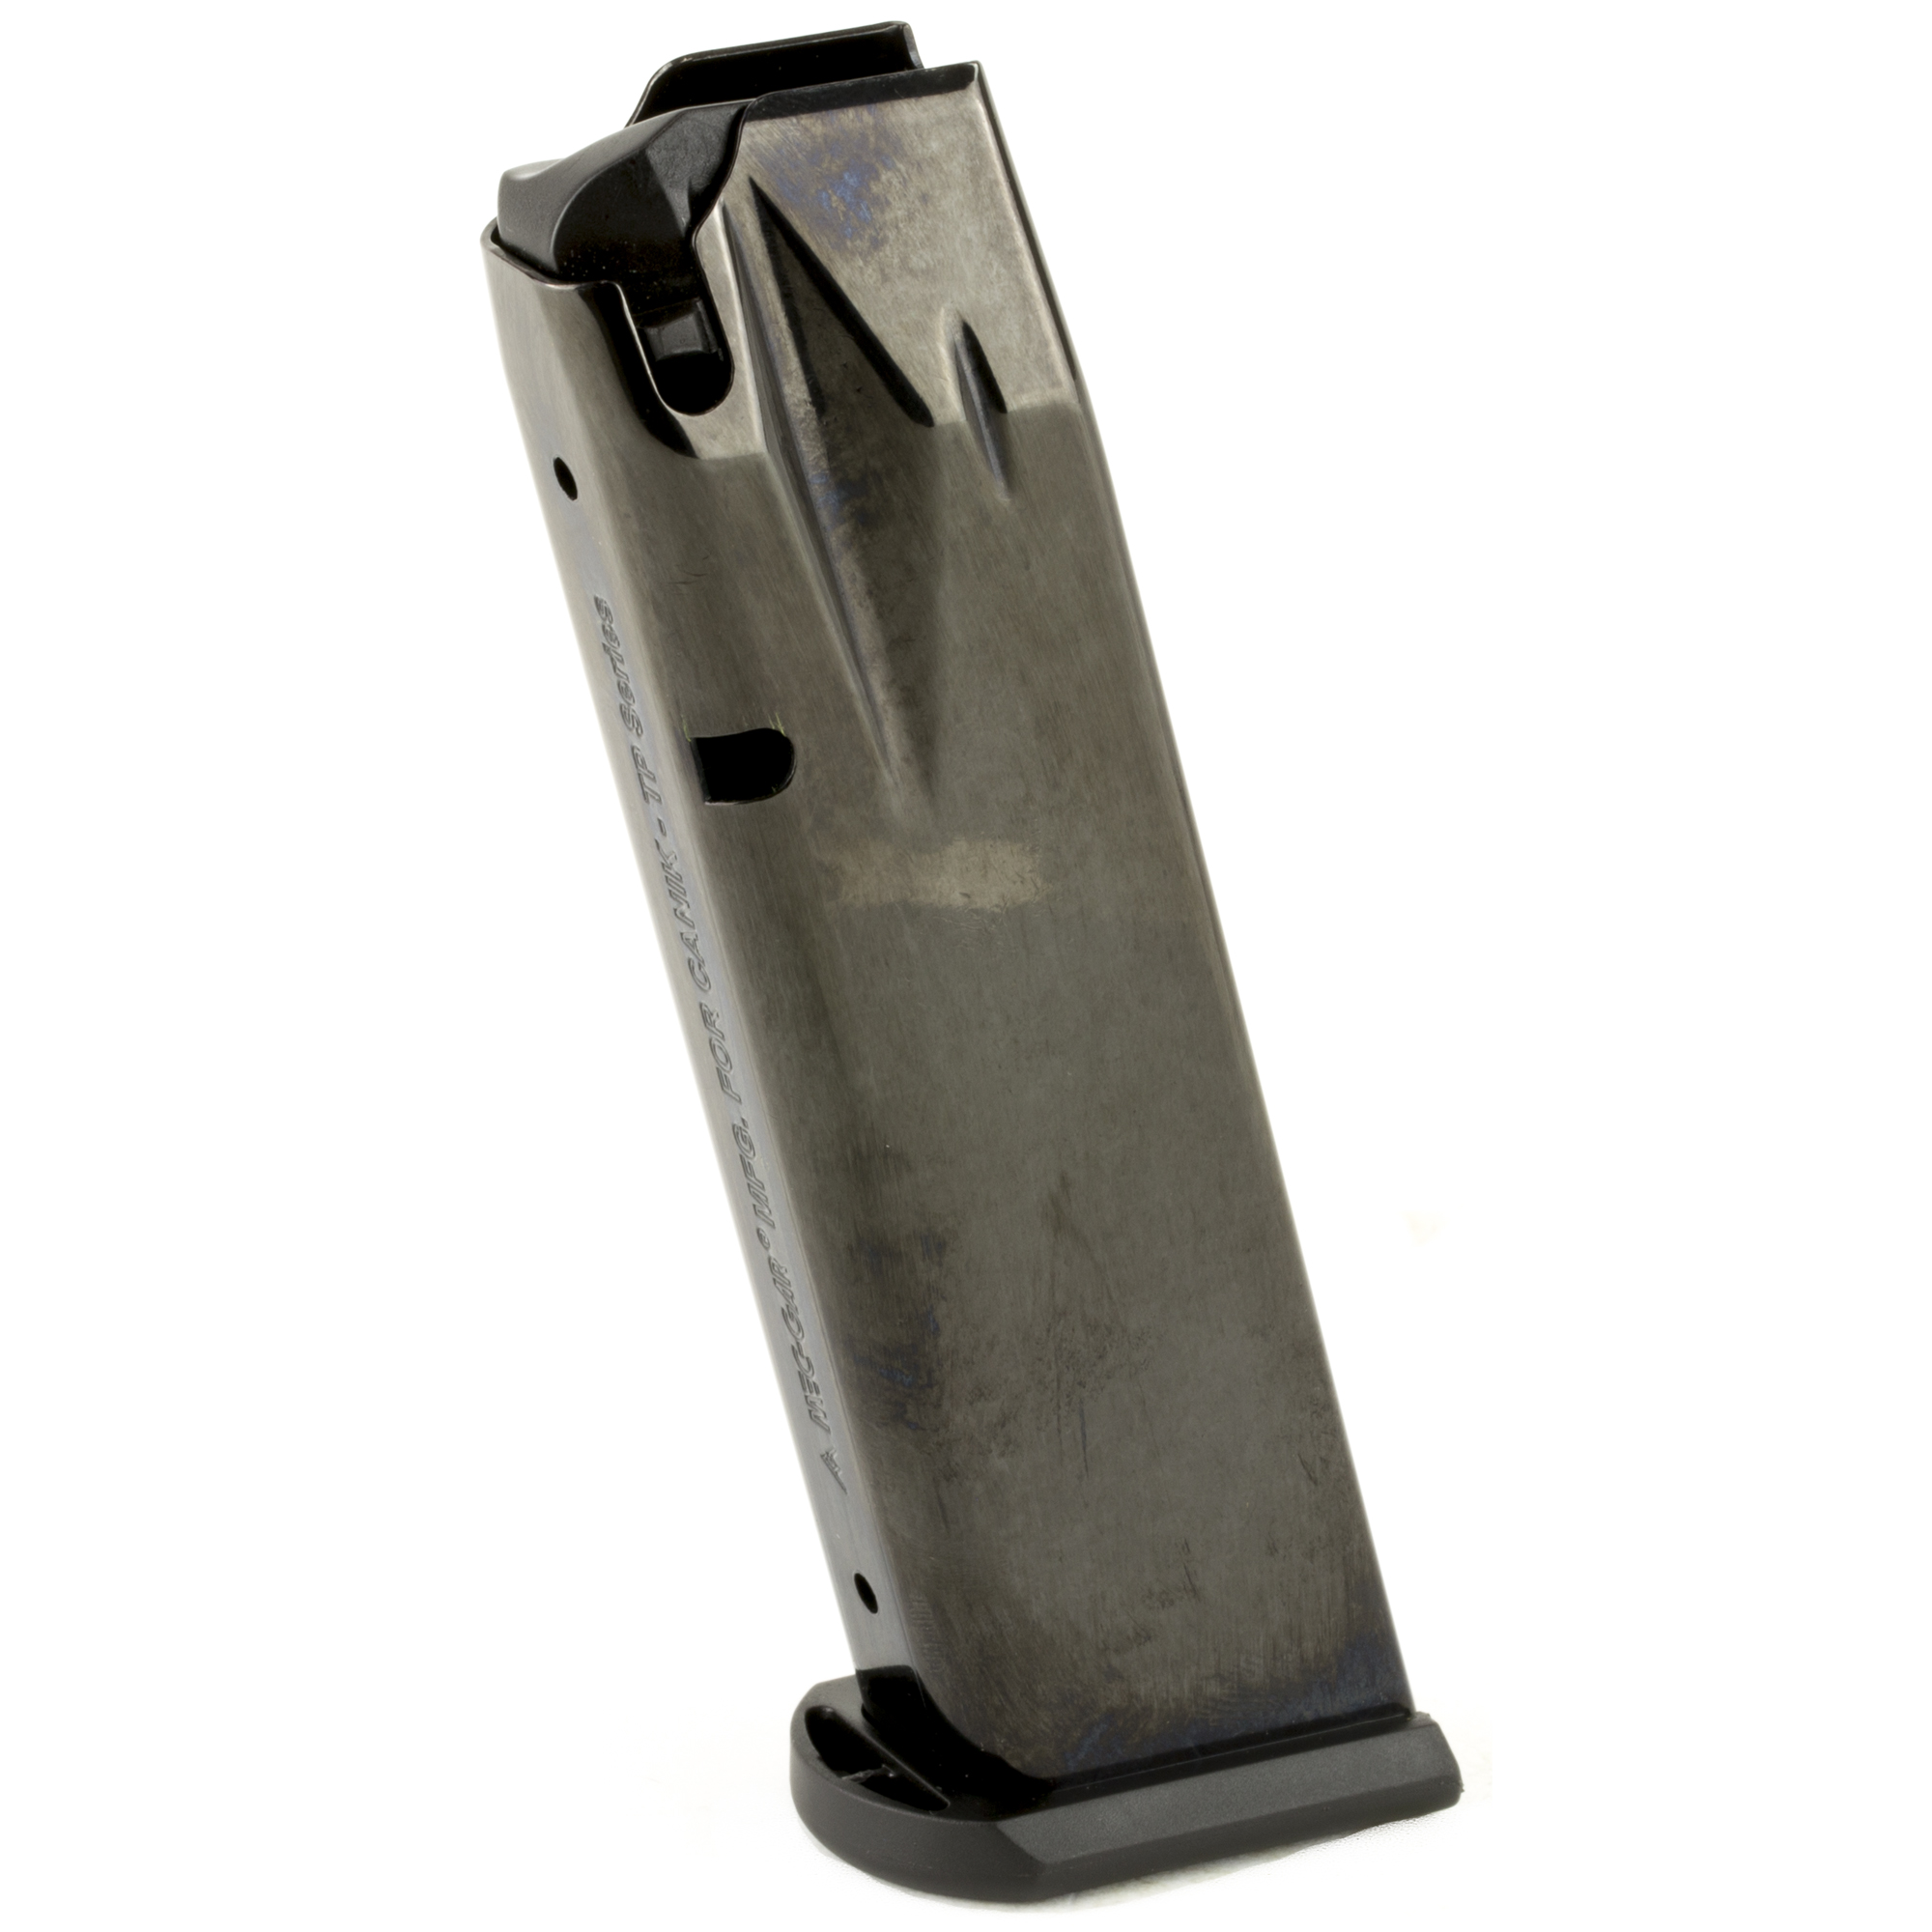 The Century Arms TP9 series magazine is a standard factory replacement magazine. Durable steel construction ensures flawless function and long-term reliability.